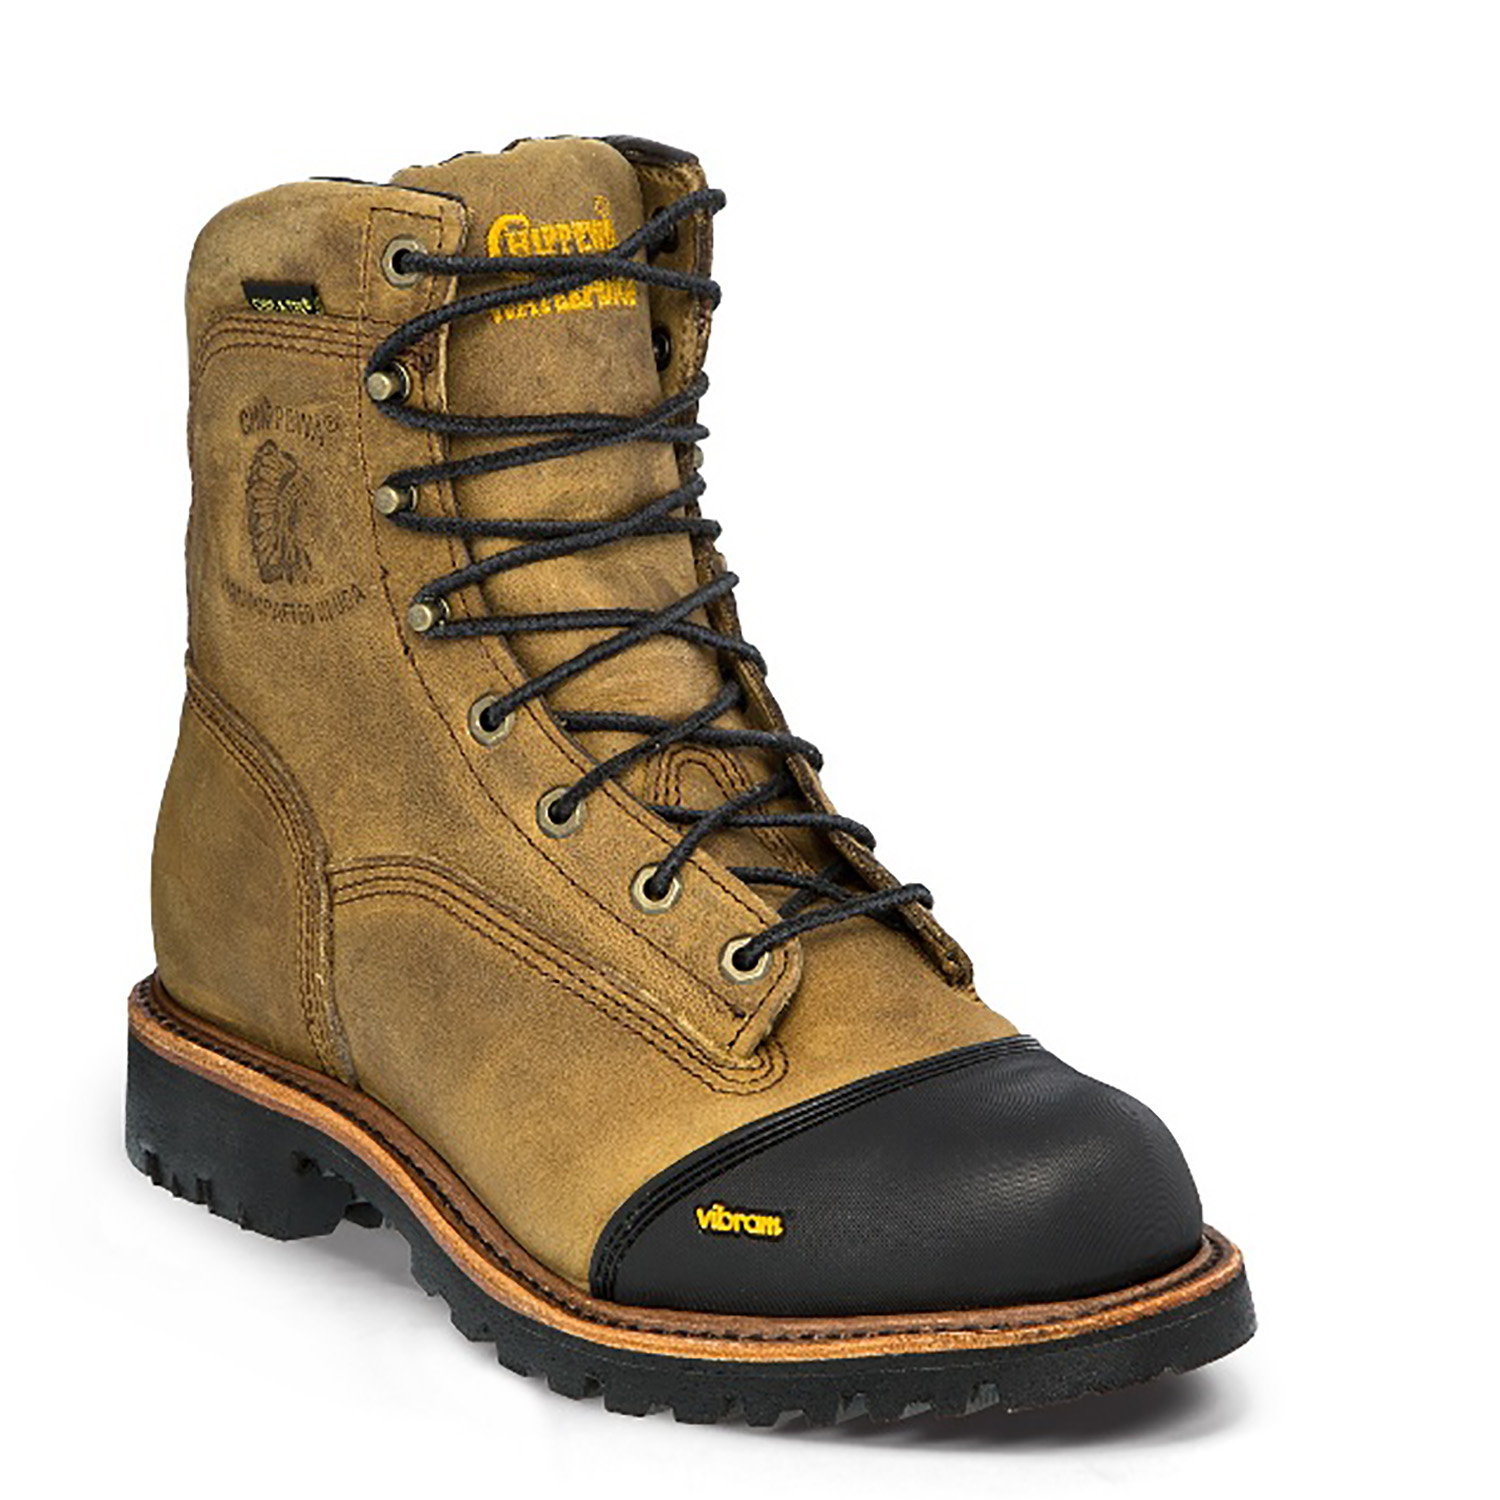 "Chippewa 8"" Insulated Plain Toe"